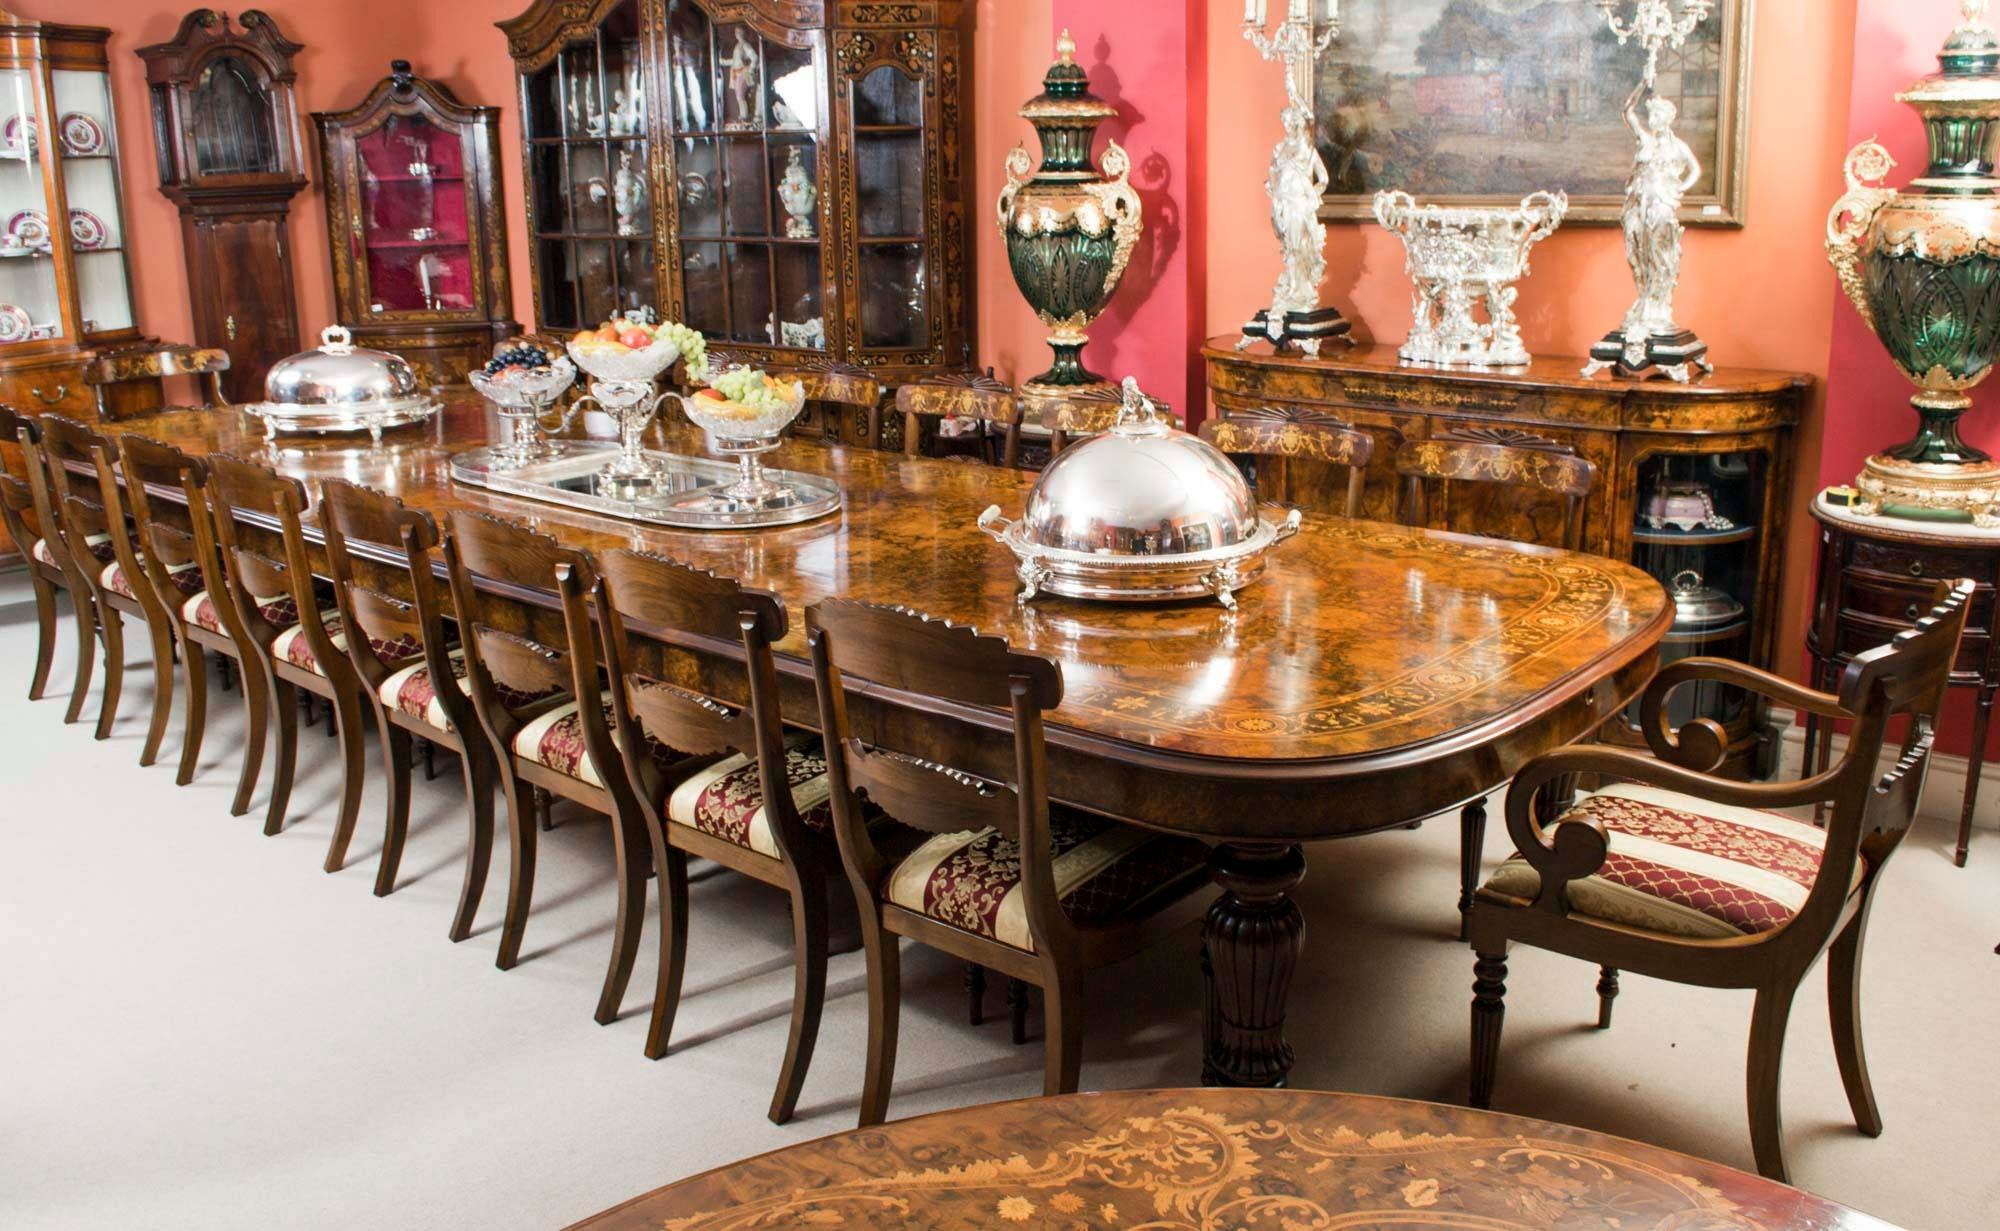 Charmant Huge Bespoke Handmade Marquetry Walnut Extending Dining Table 18 Chairs For  Sale At 1stdibs